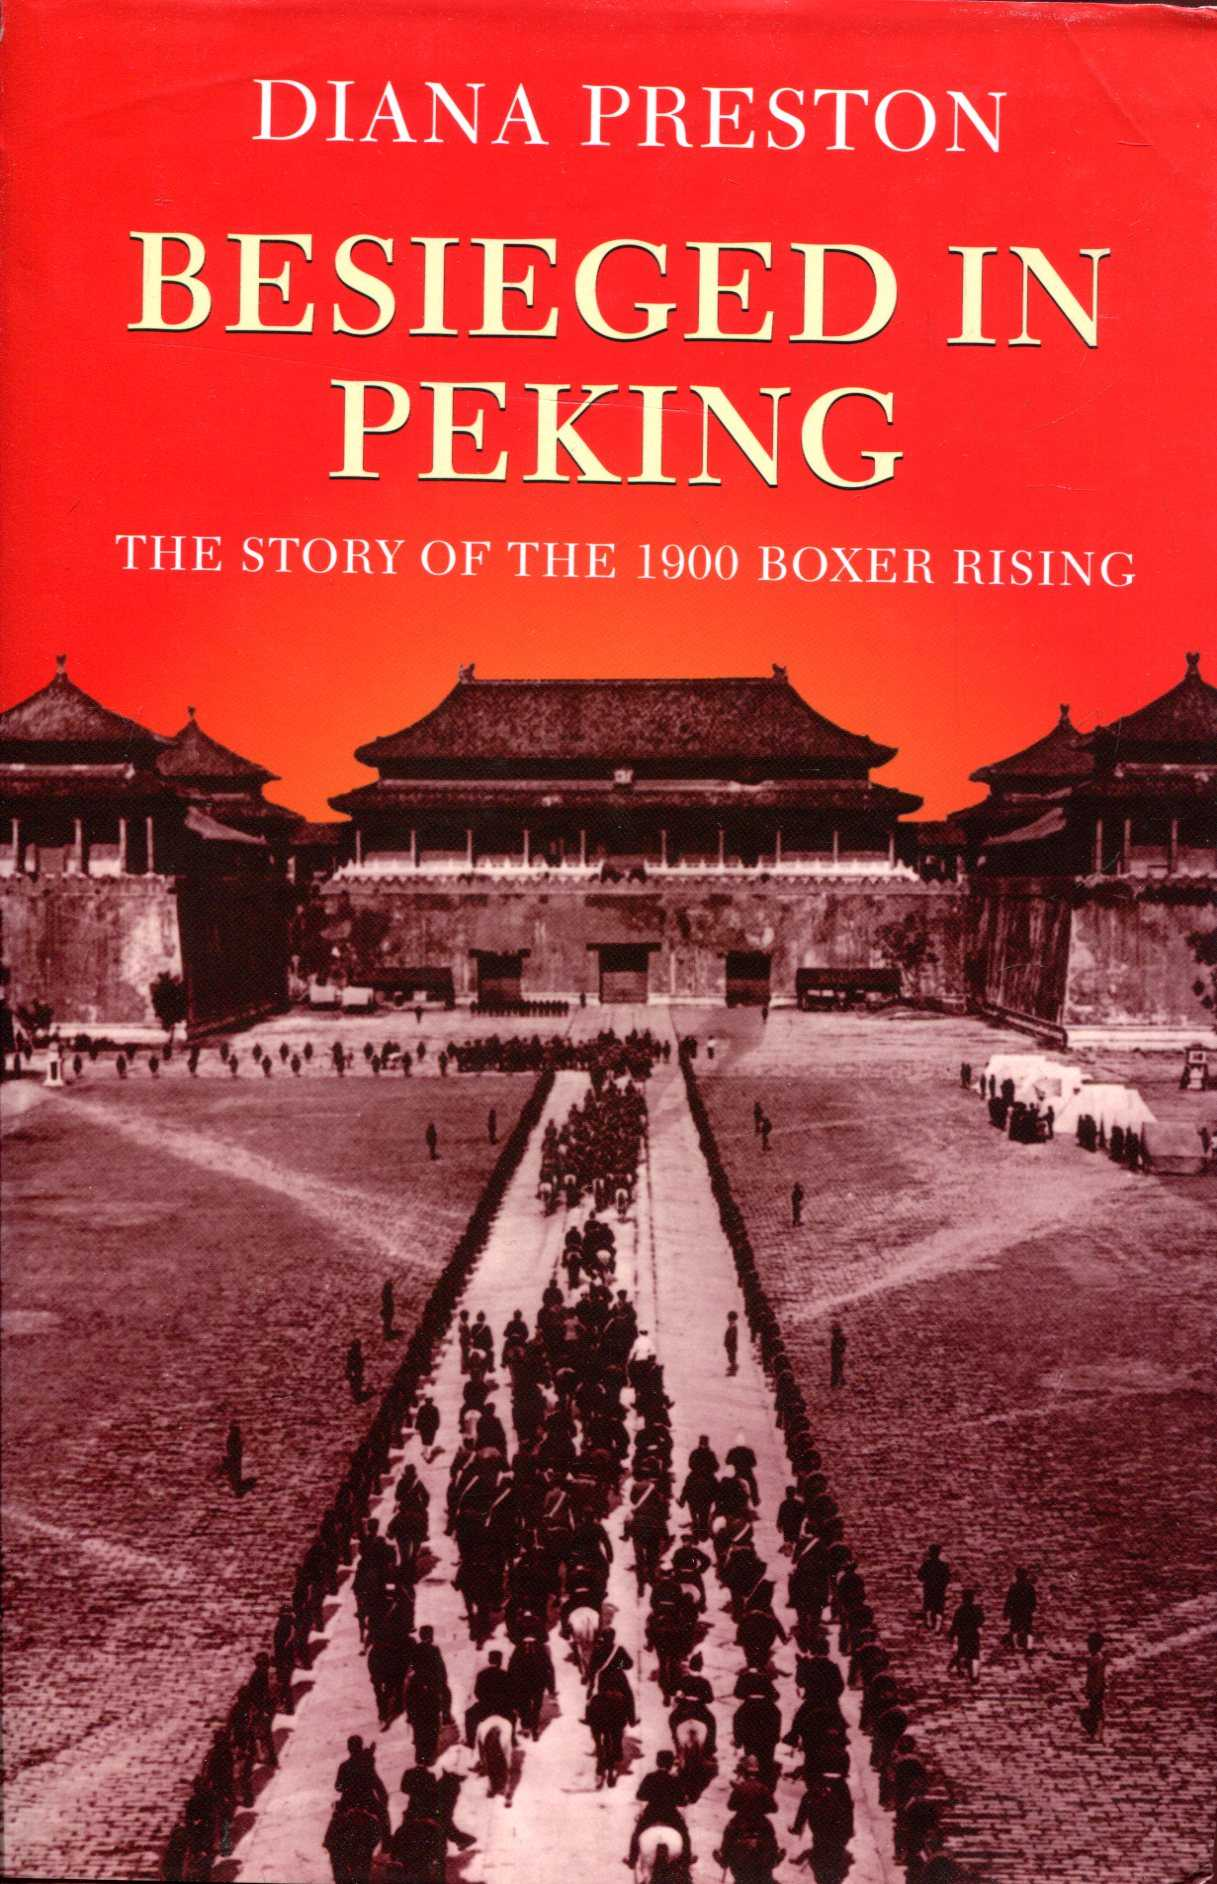 Image for Besieged in Peking: The Story of the 1900 Boxer Rising